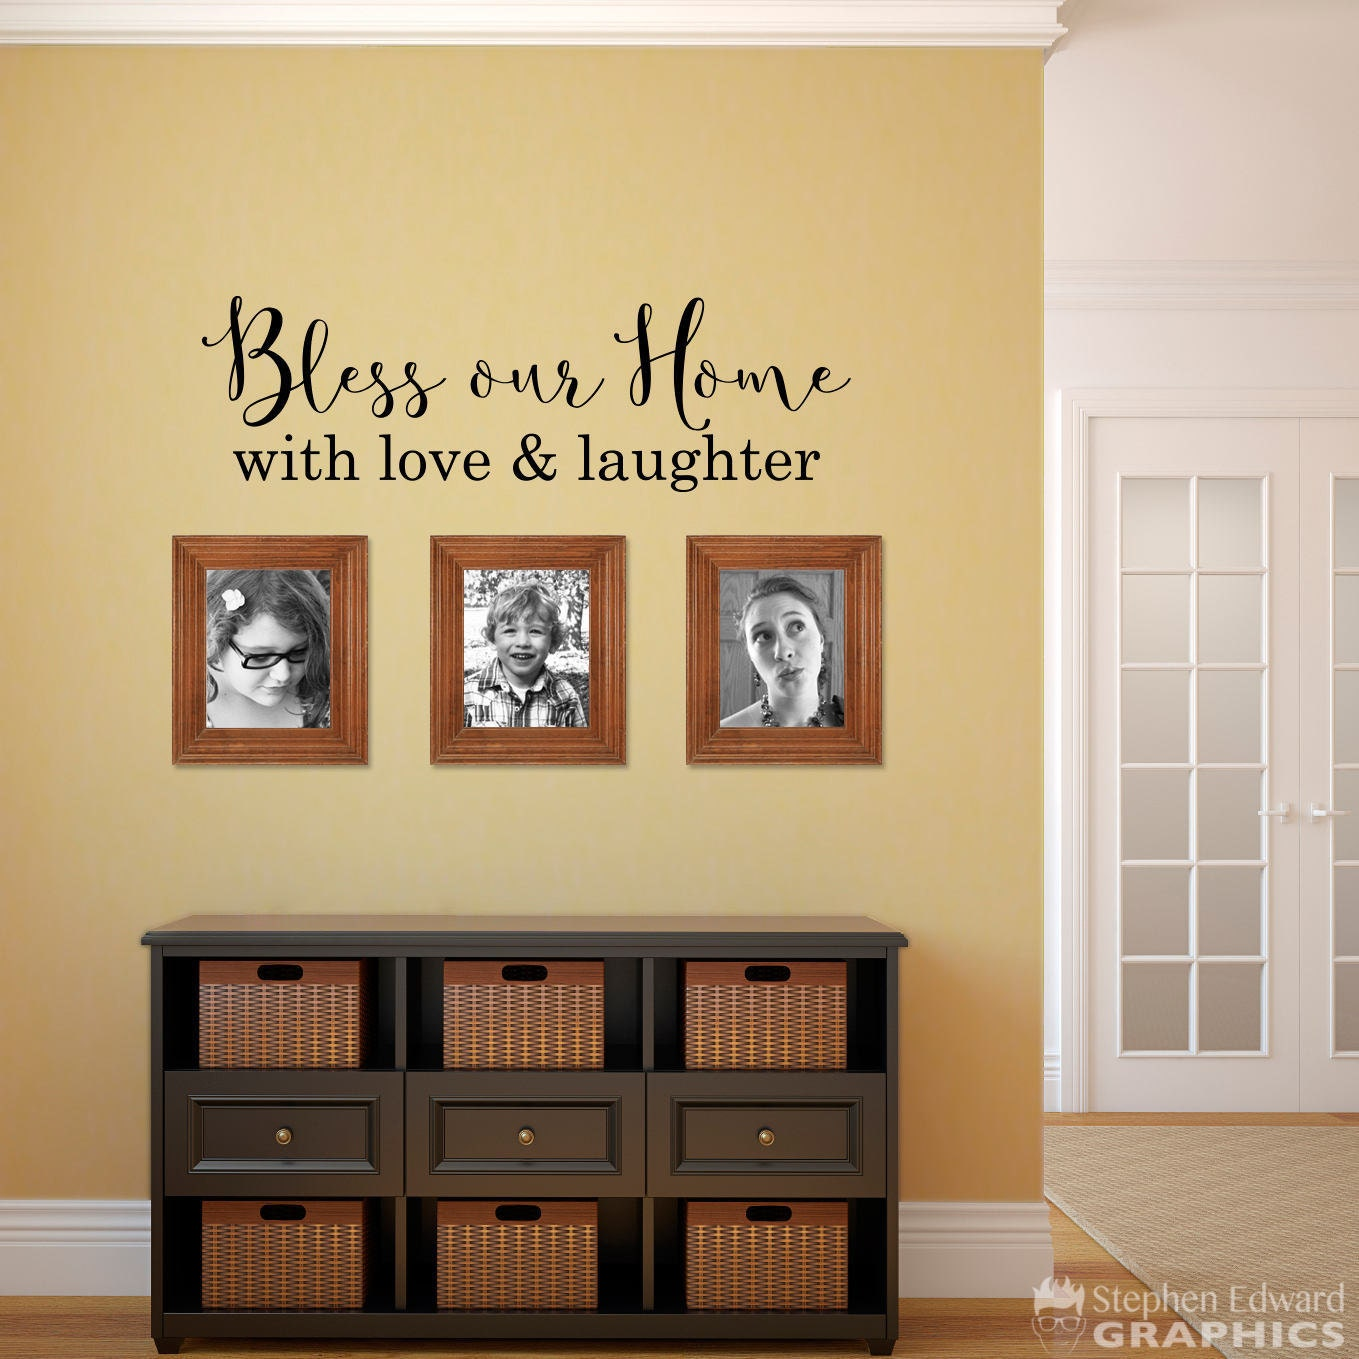 Bless our Home with love & laughter Decal Home Wall Decal | Etsy